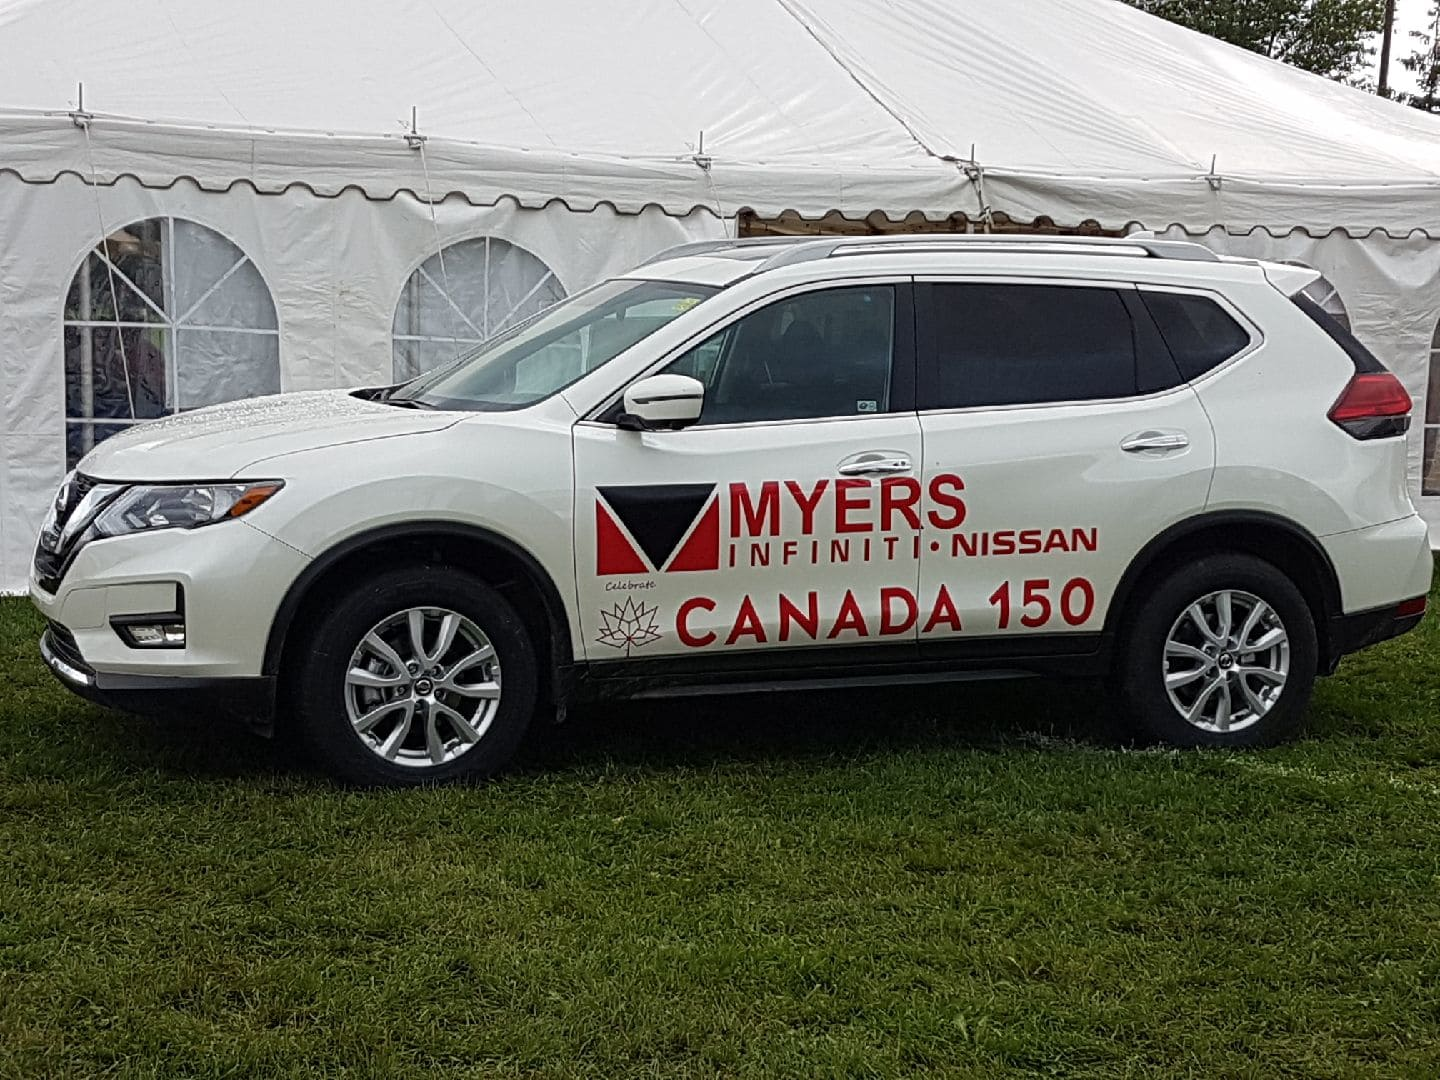 car with Canada 150 decals